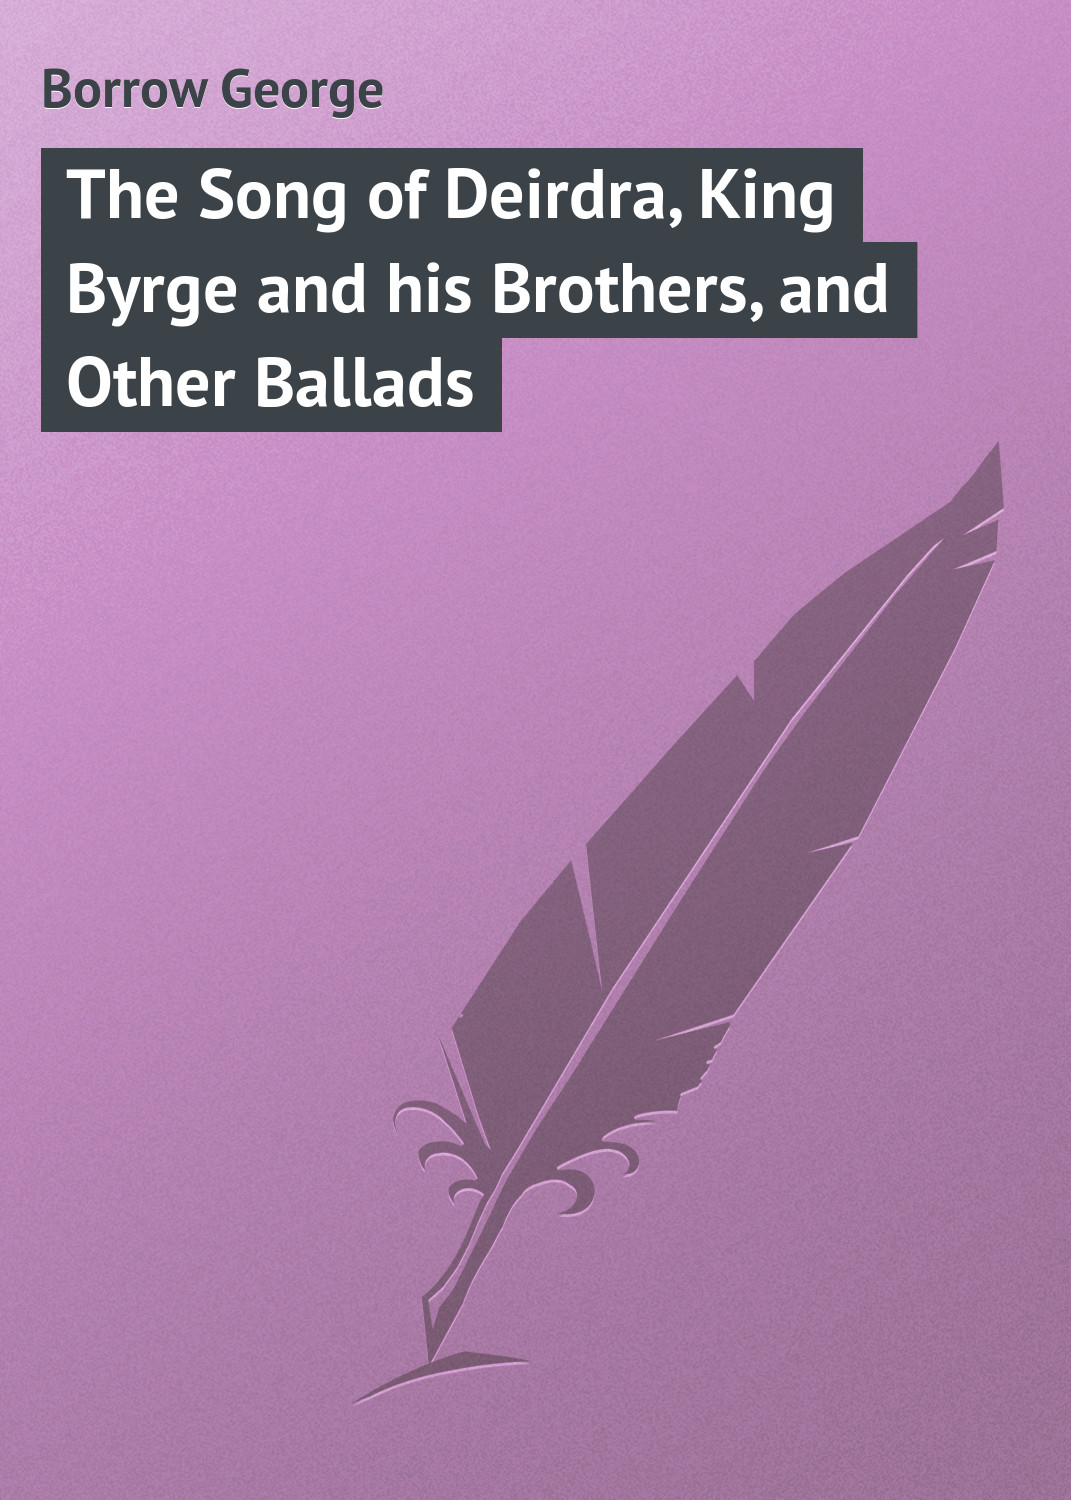 Borrow George The Song of Deirdra, King Byrge and his Brothers, and Other Ballads various ballads of beauty